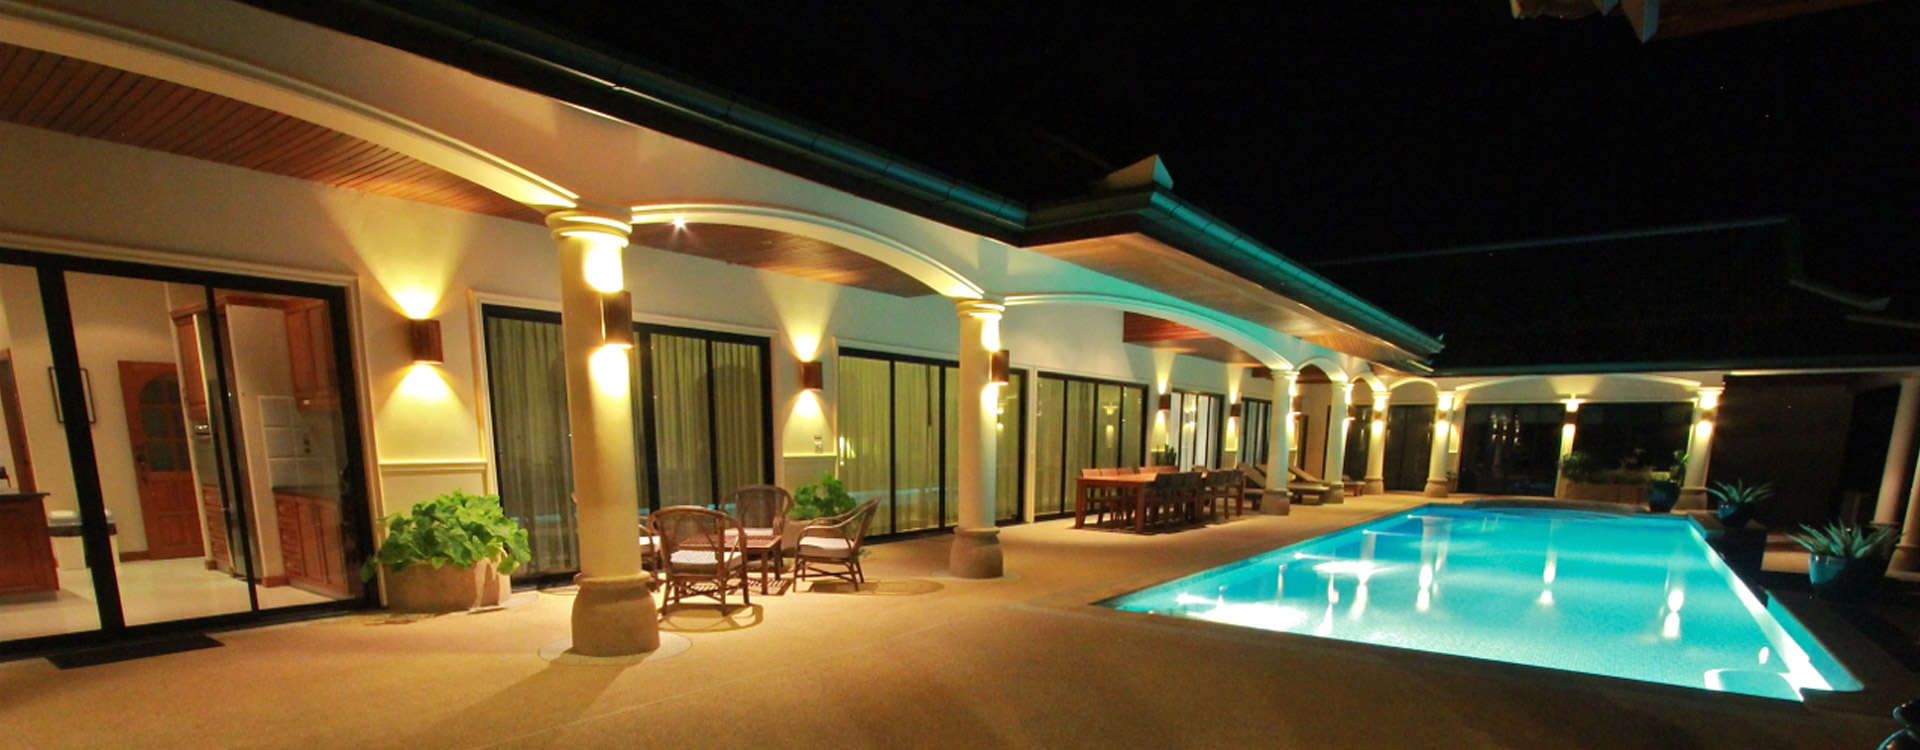 Villa1 Pool at Night